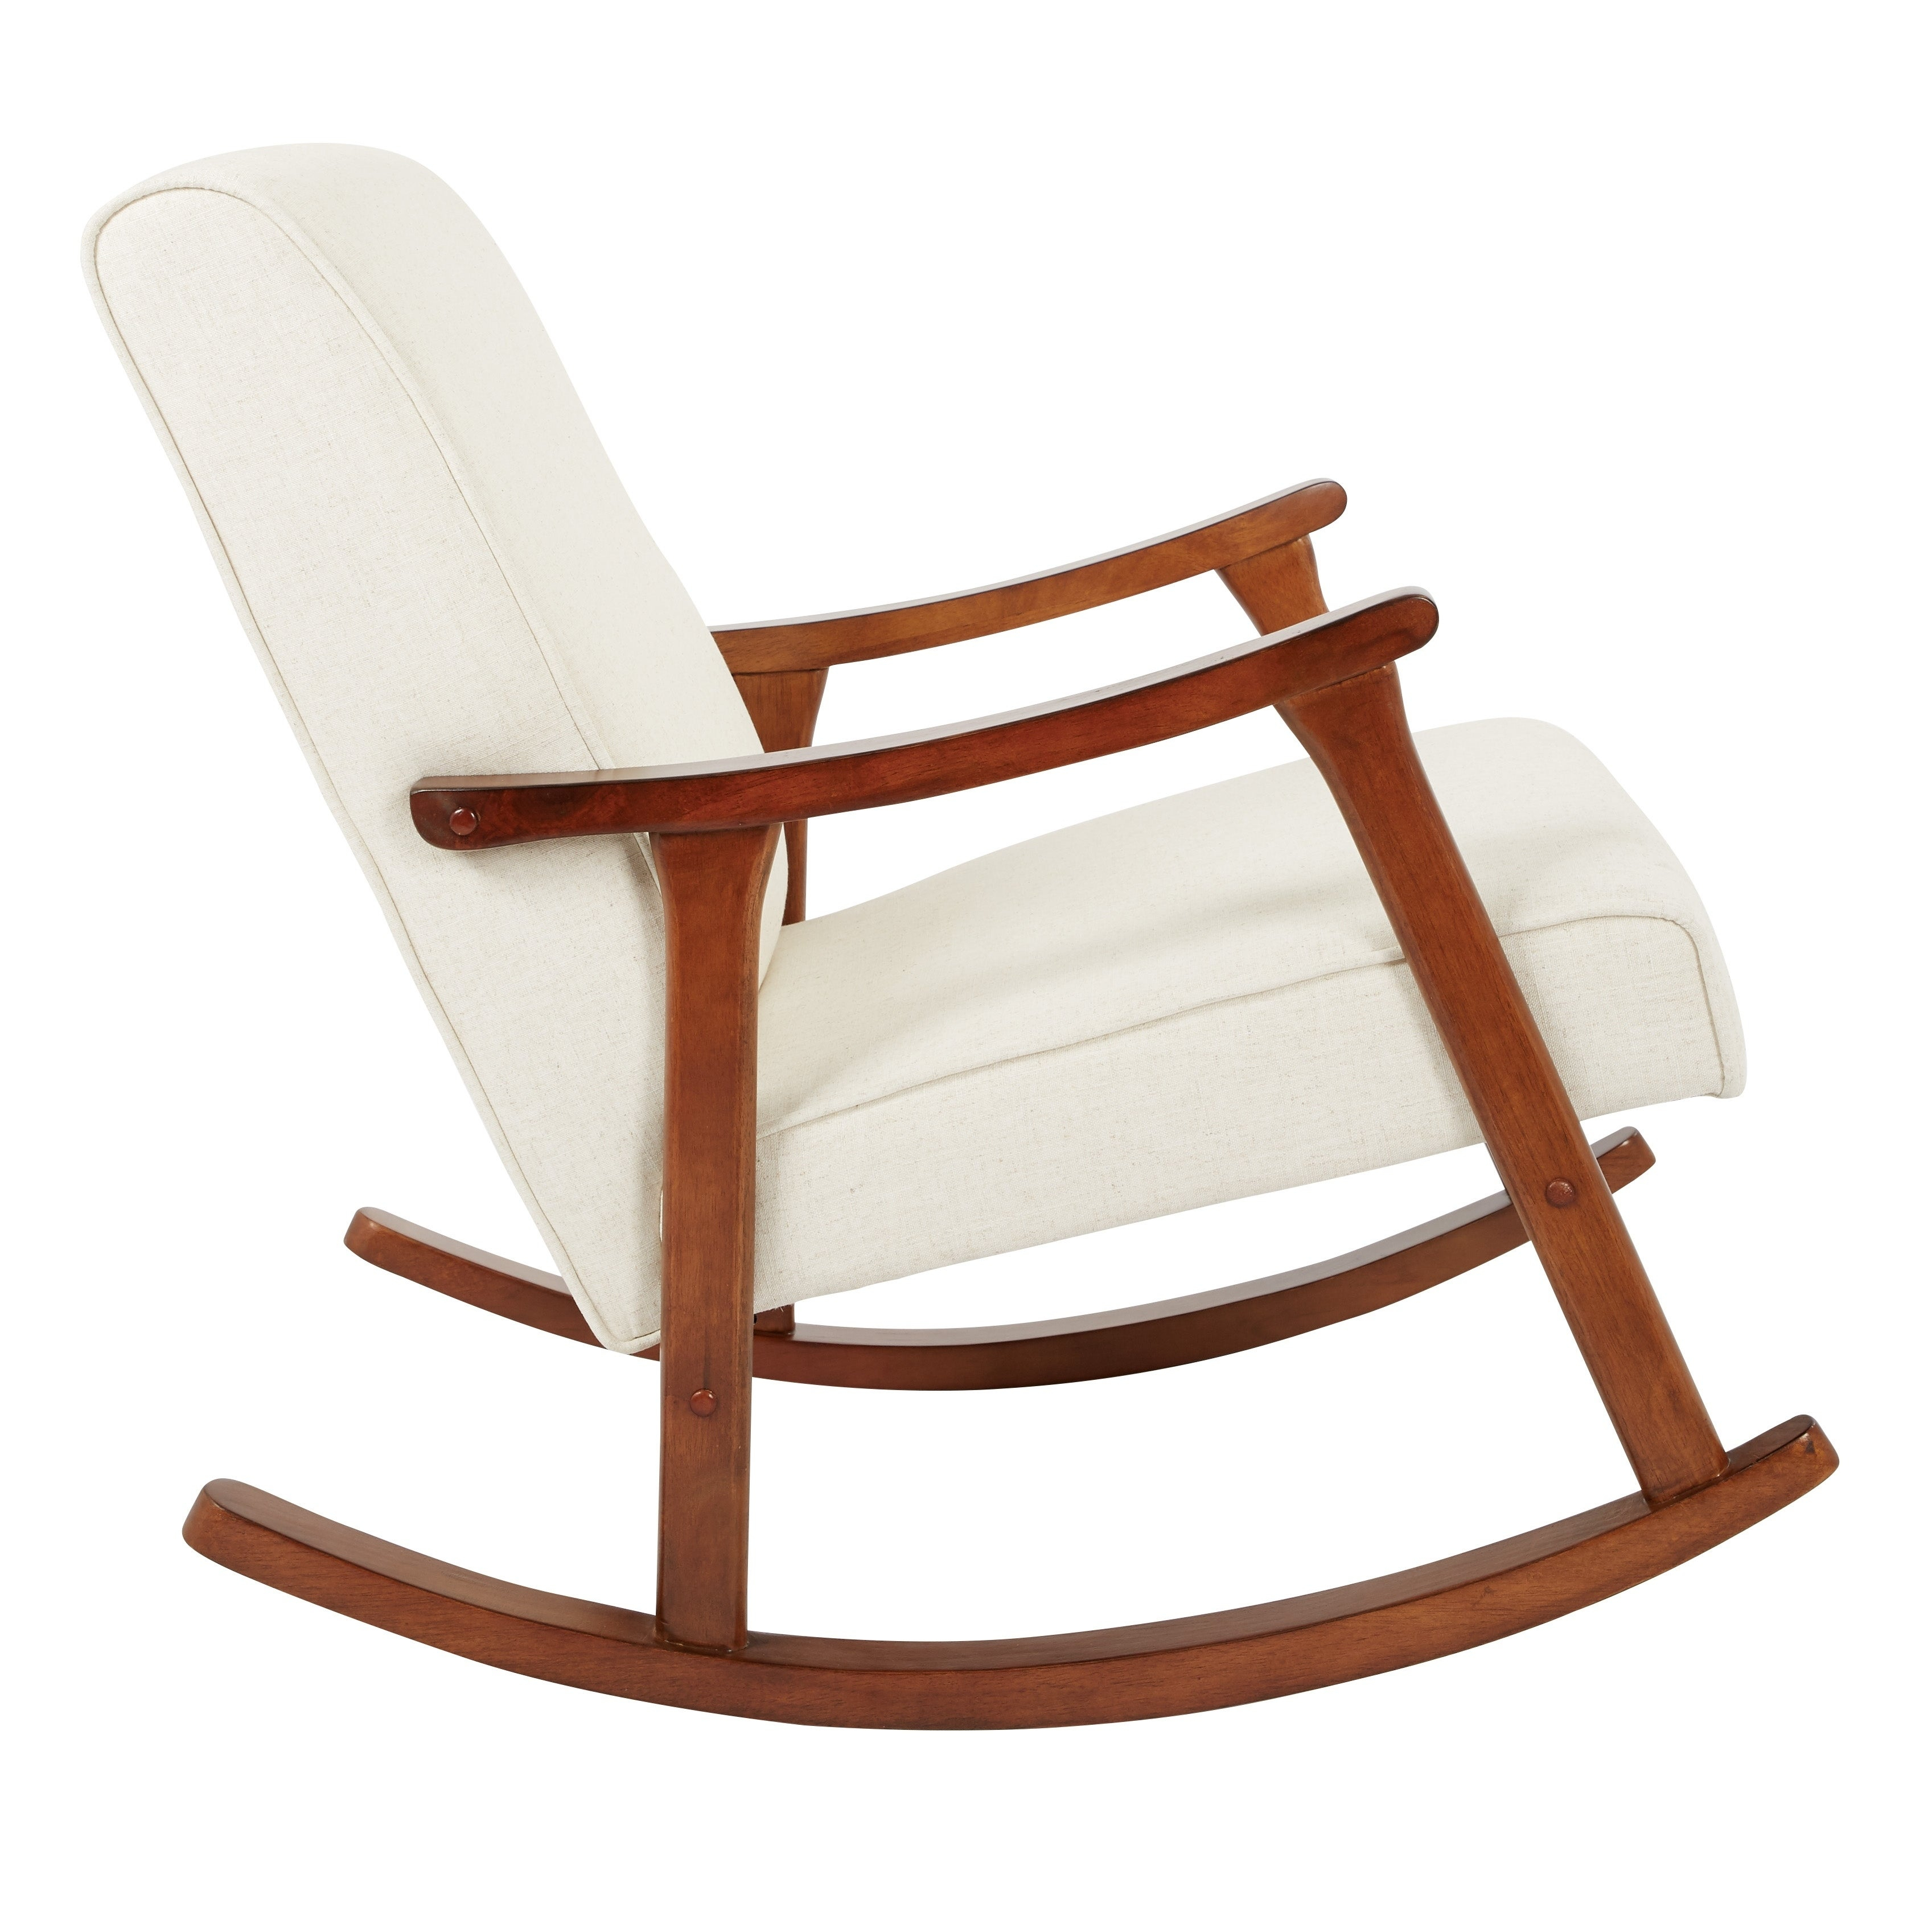 Osp Home Furnishings Gainsborough Rocker In Linen Fabric With Medium  Espresso Base Intended For Rocking Chairs In Linen Fabric With Medium Espresso Base (#10 of 20)